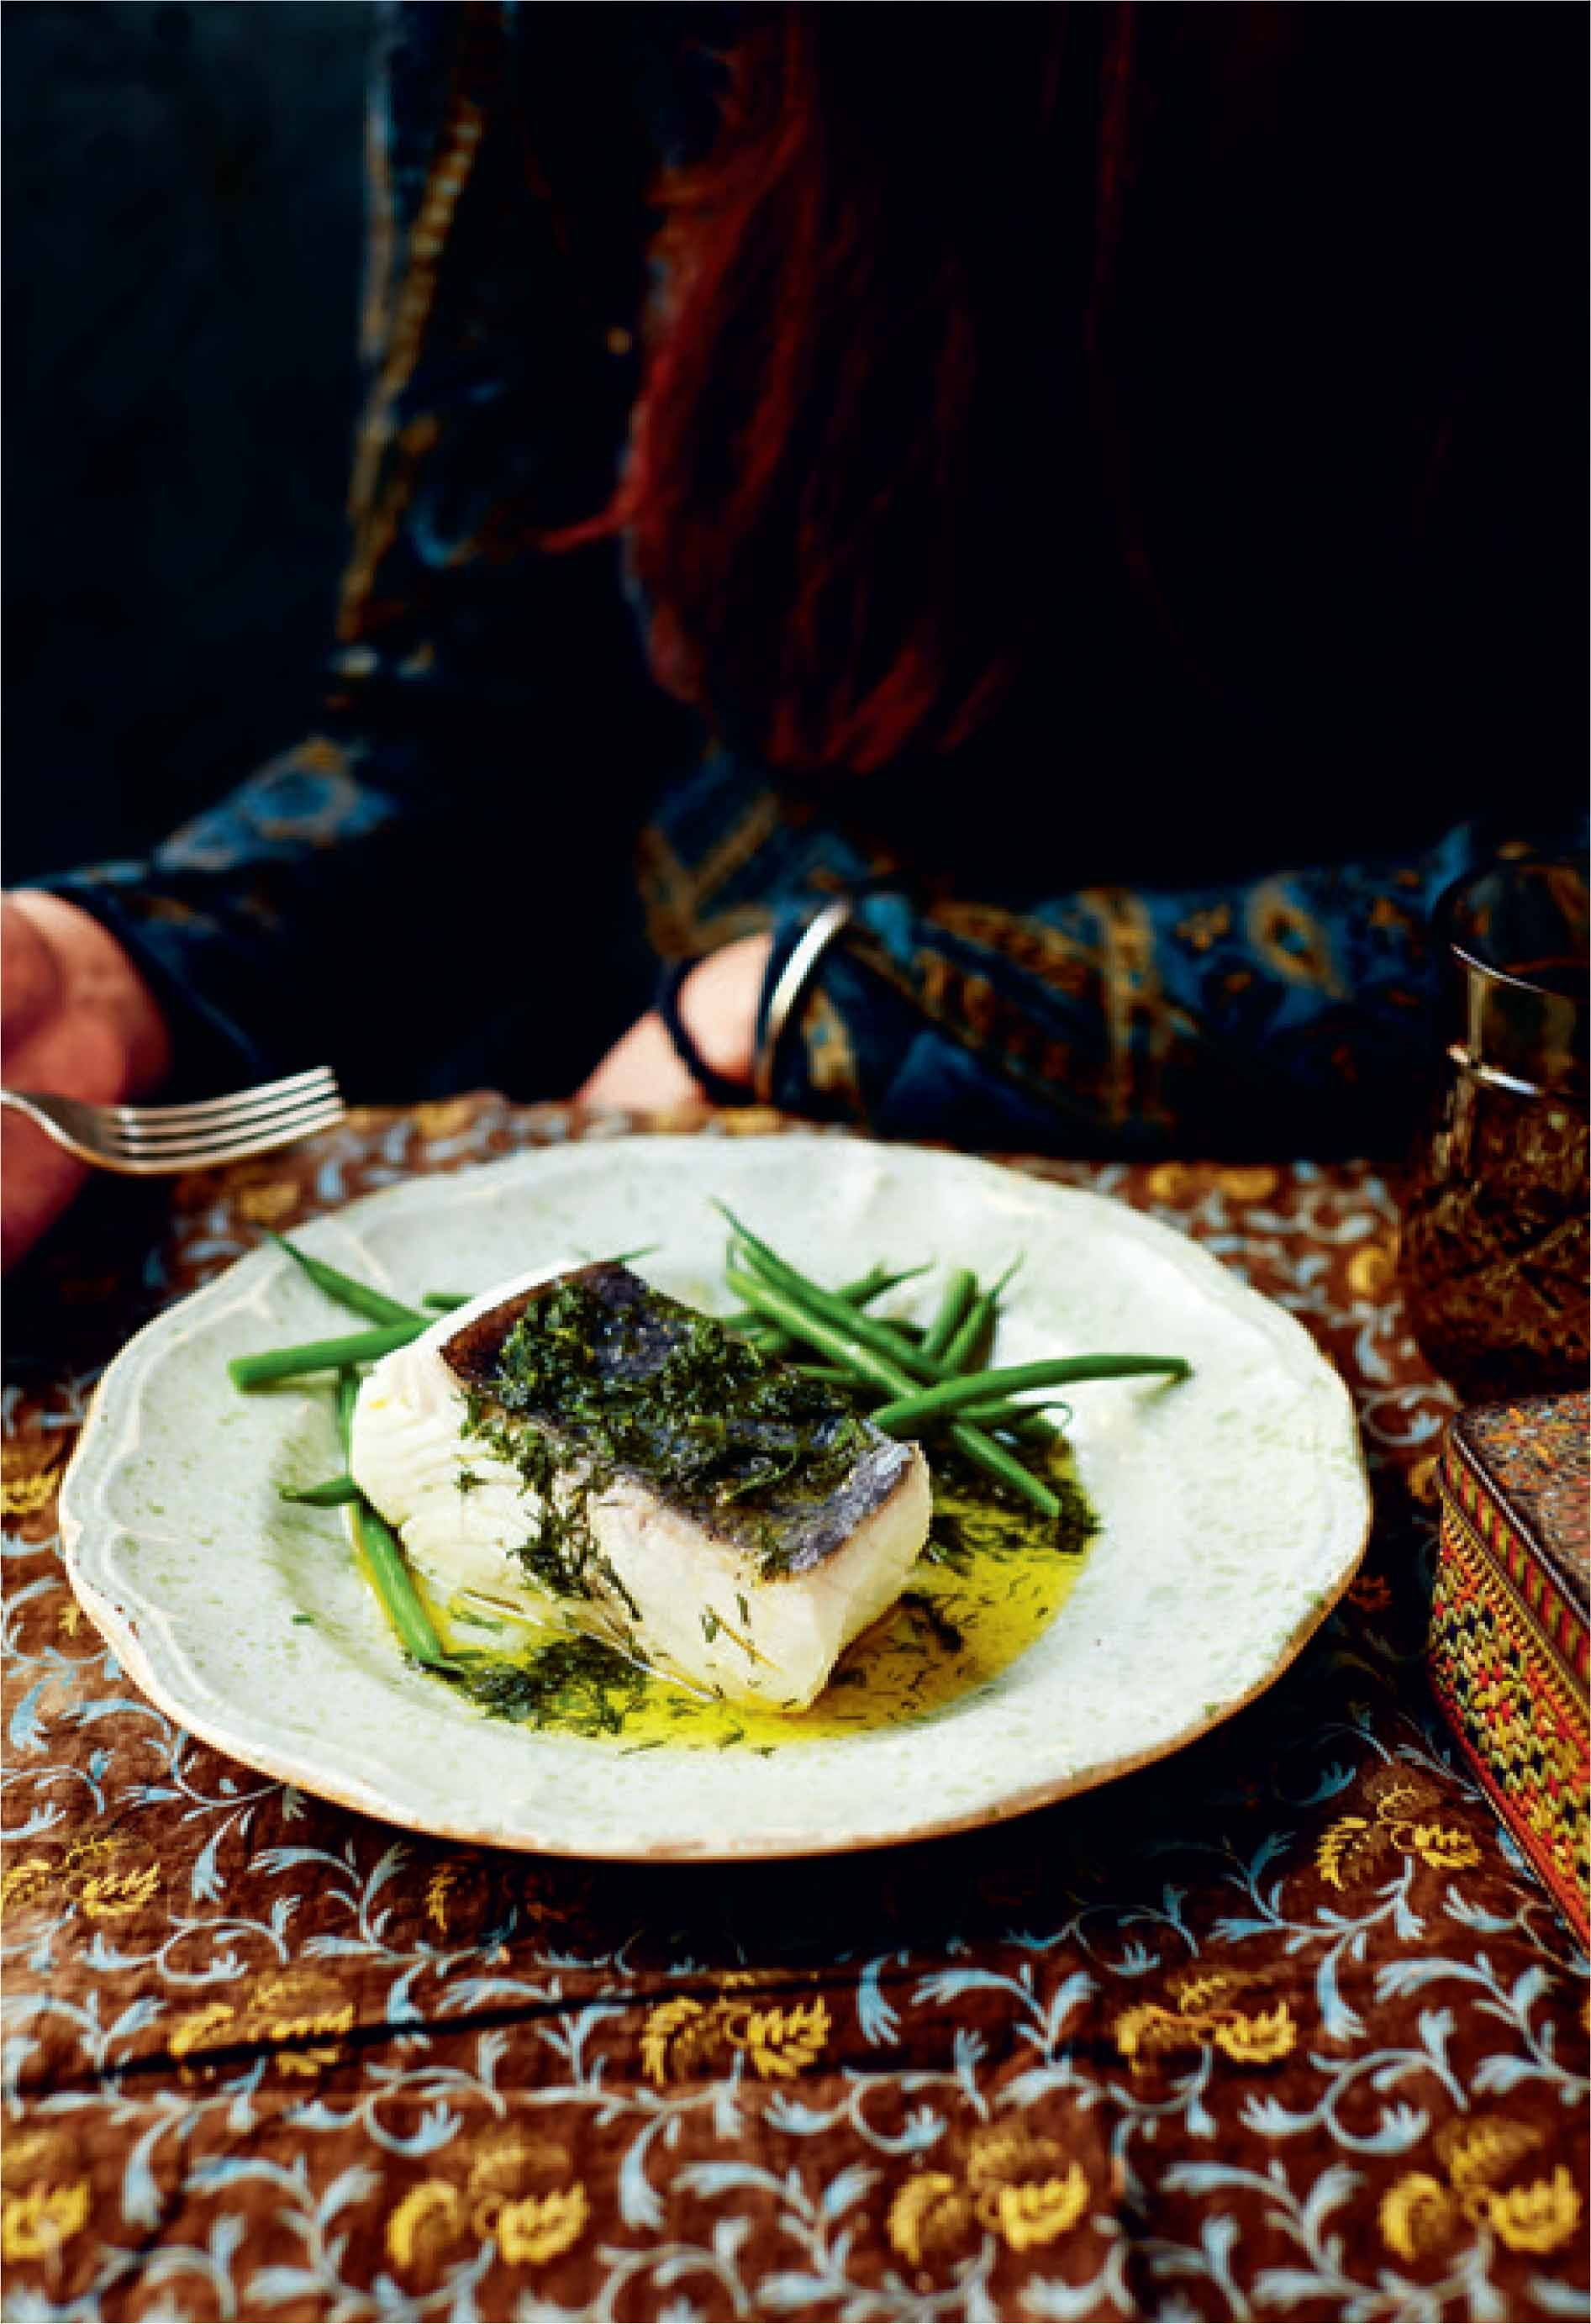 Poached halibut in buttery dill sauce recipe from Polska by Zuza Zak | Cooked